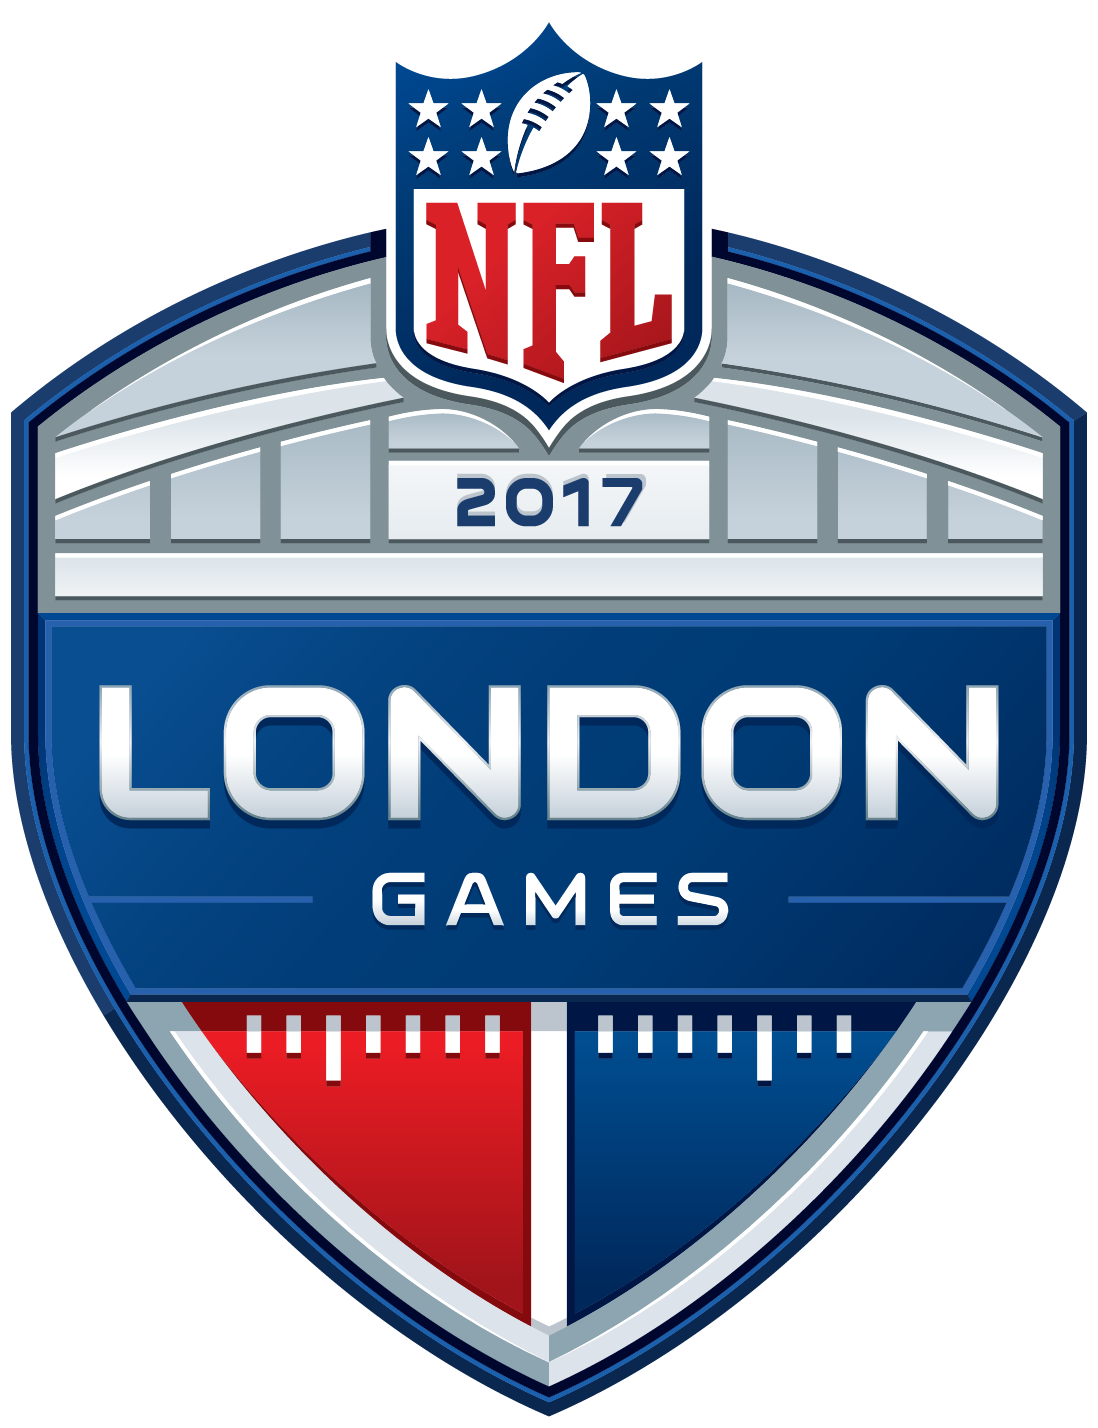 London Games Nfl Com Nfl Com